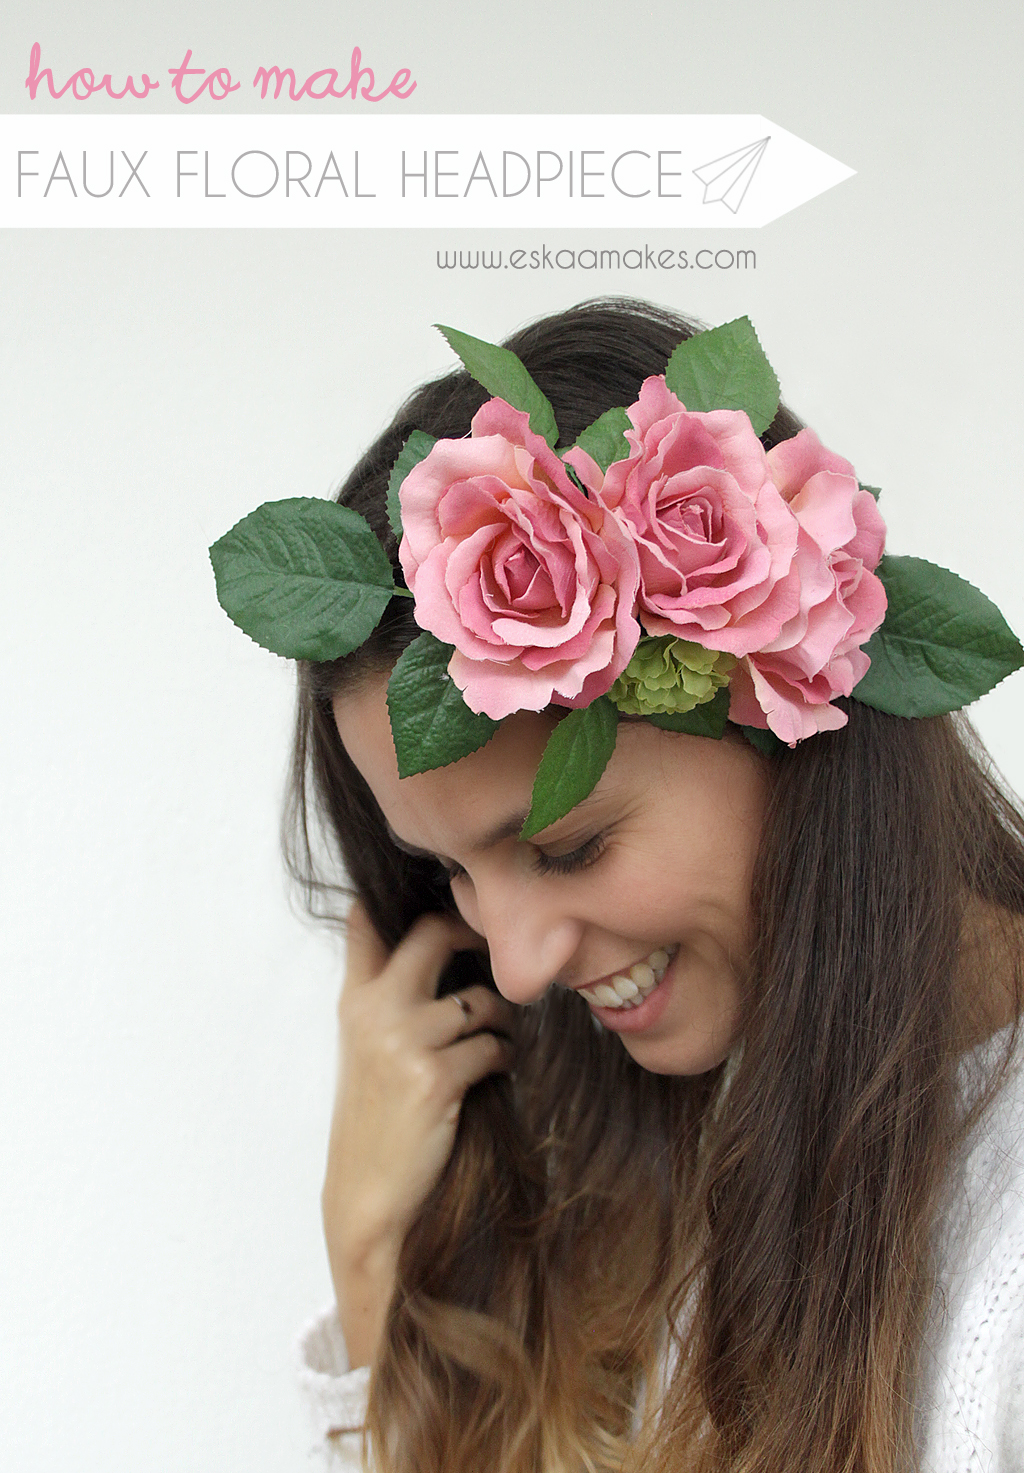 Accessory For Hair: How To Make: Faux Floral Headpiece » [es.kaa.] Makes